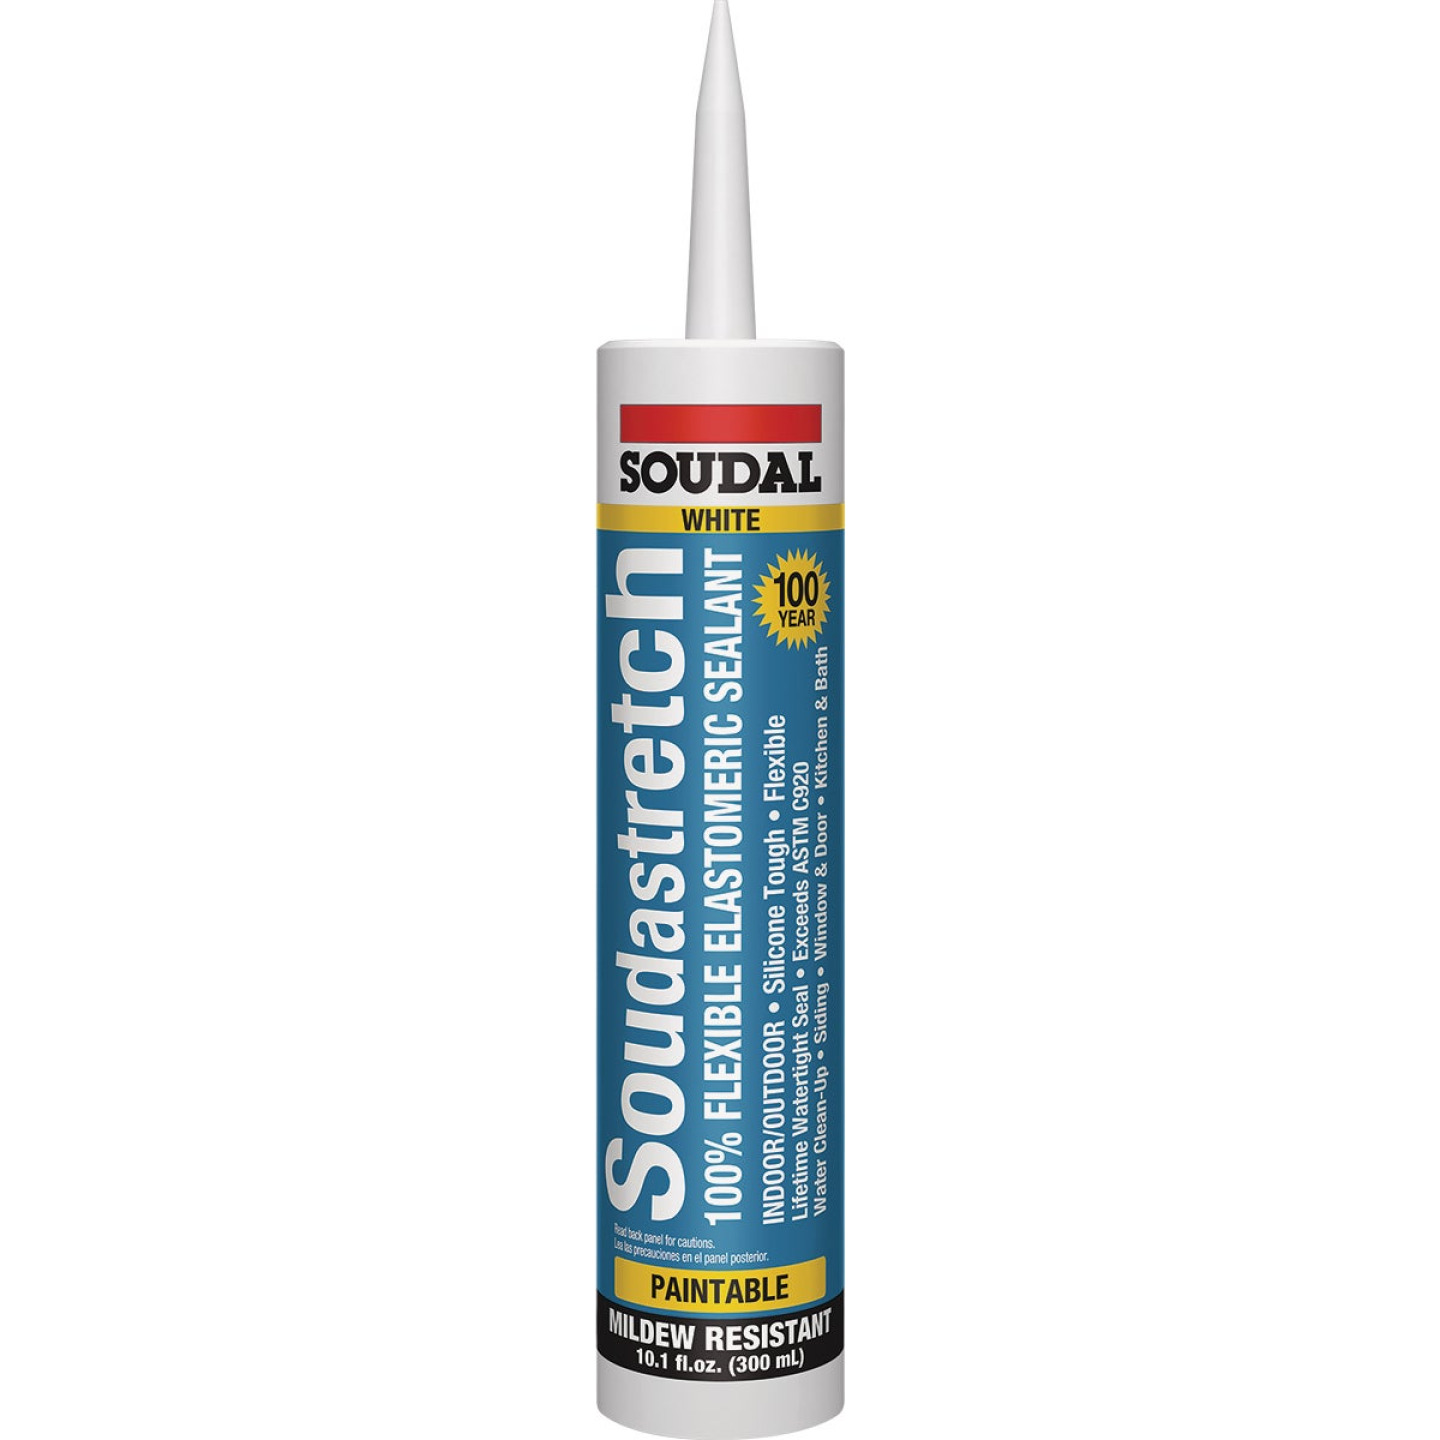 Soudastretch 10.1 Oz. Acrylic Elastomeric Caulk, White Image 1